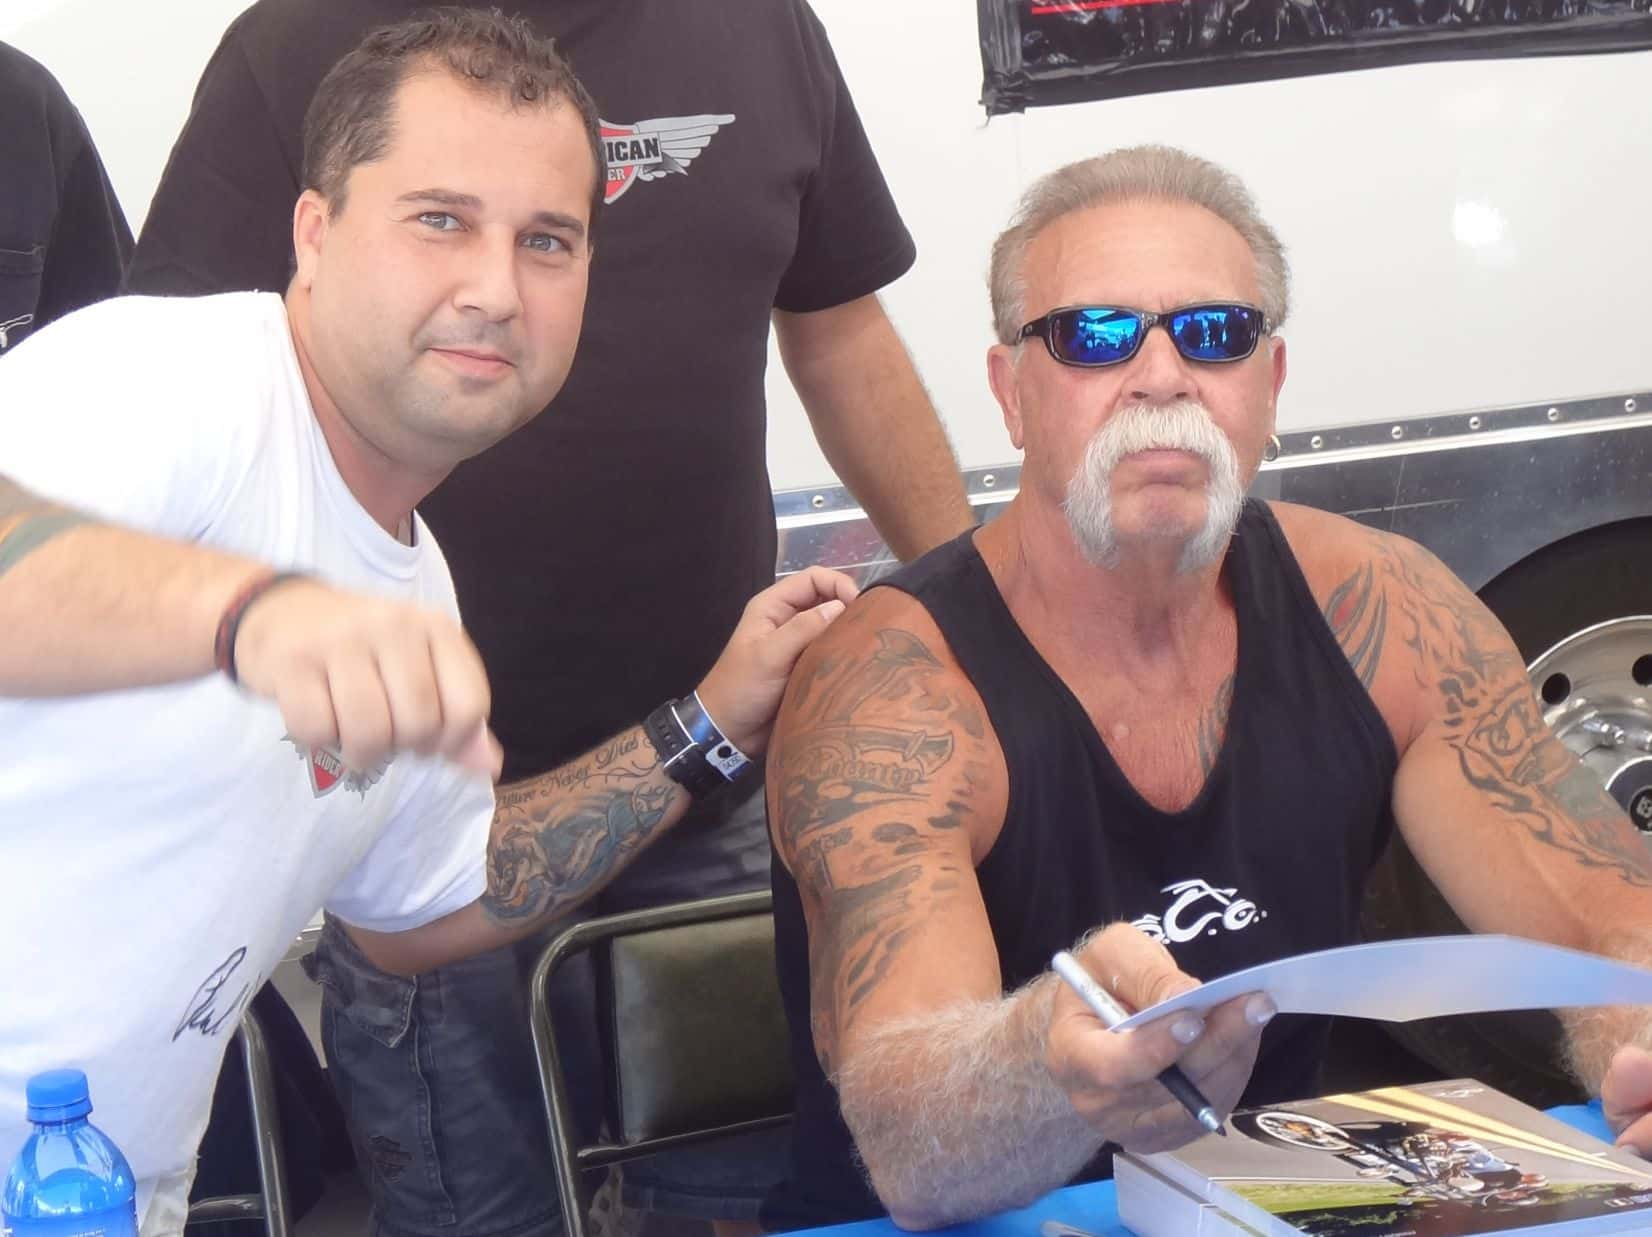 francisco ali manen - lord drake kustoms - paul teutul american chopper